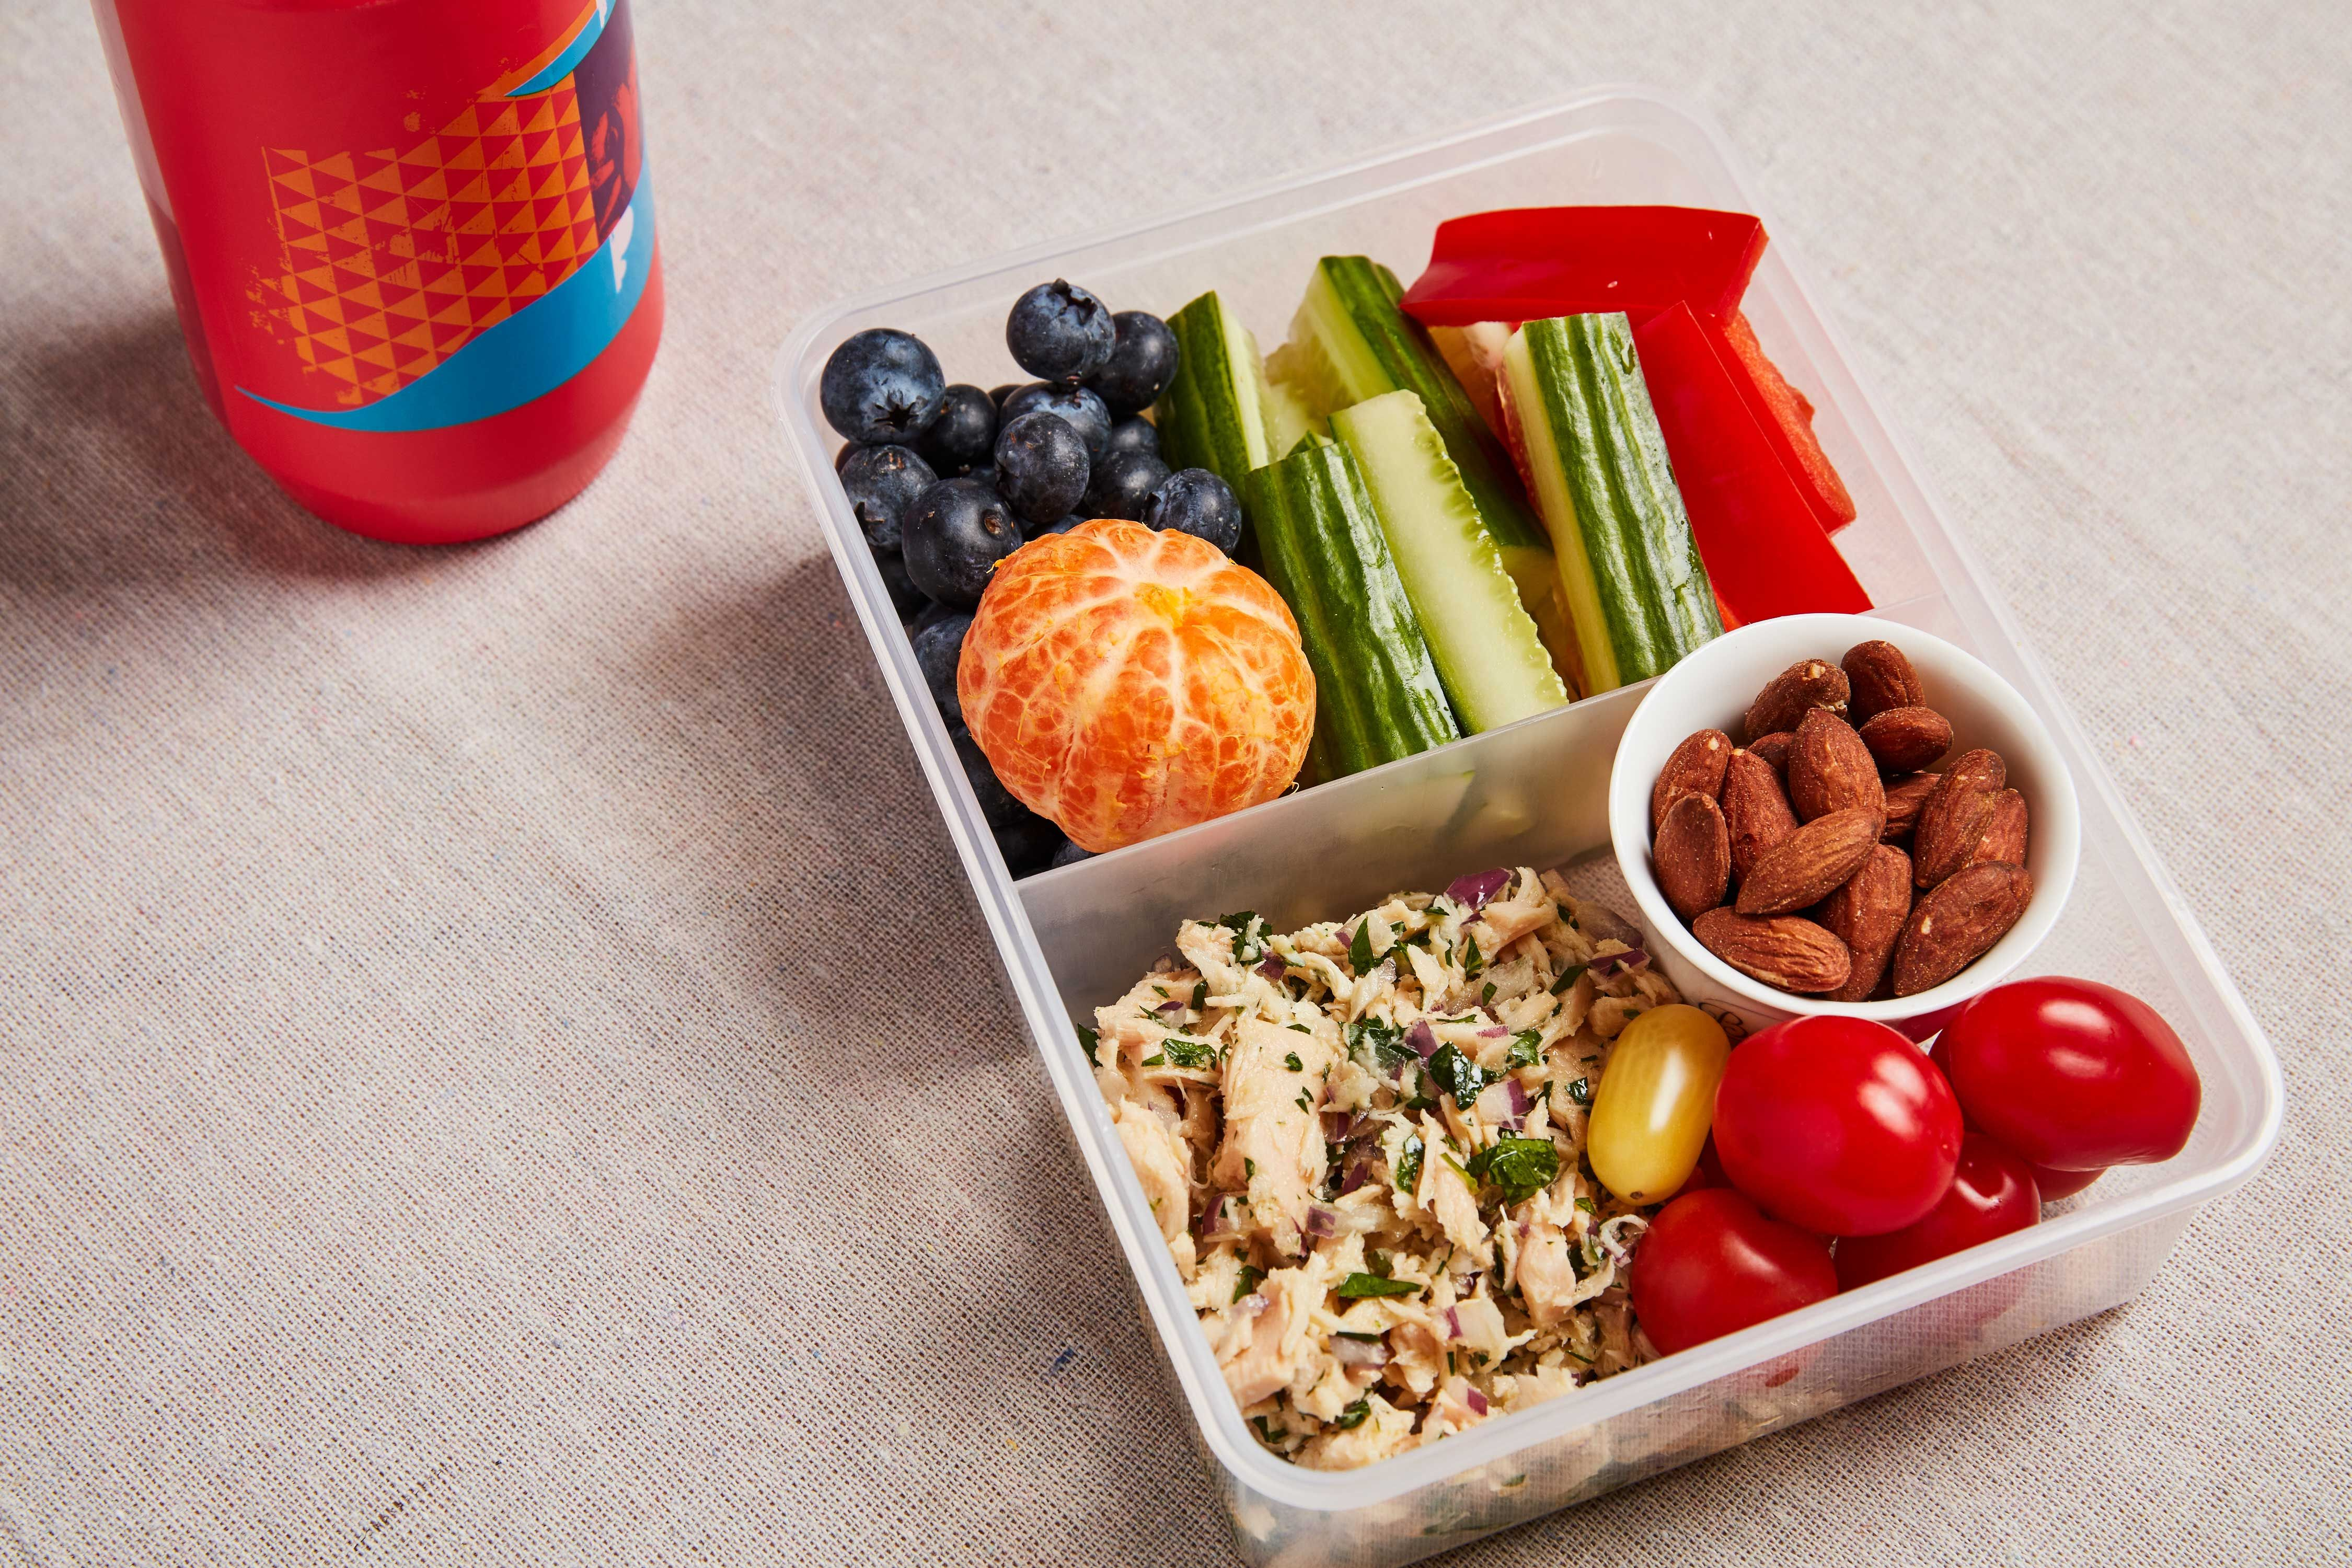 how does diet influence dimentia